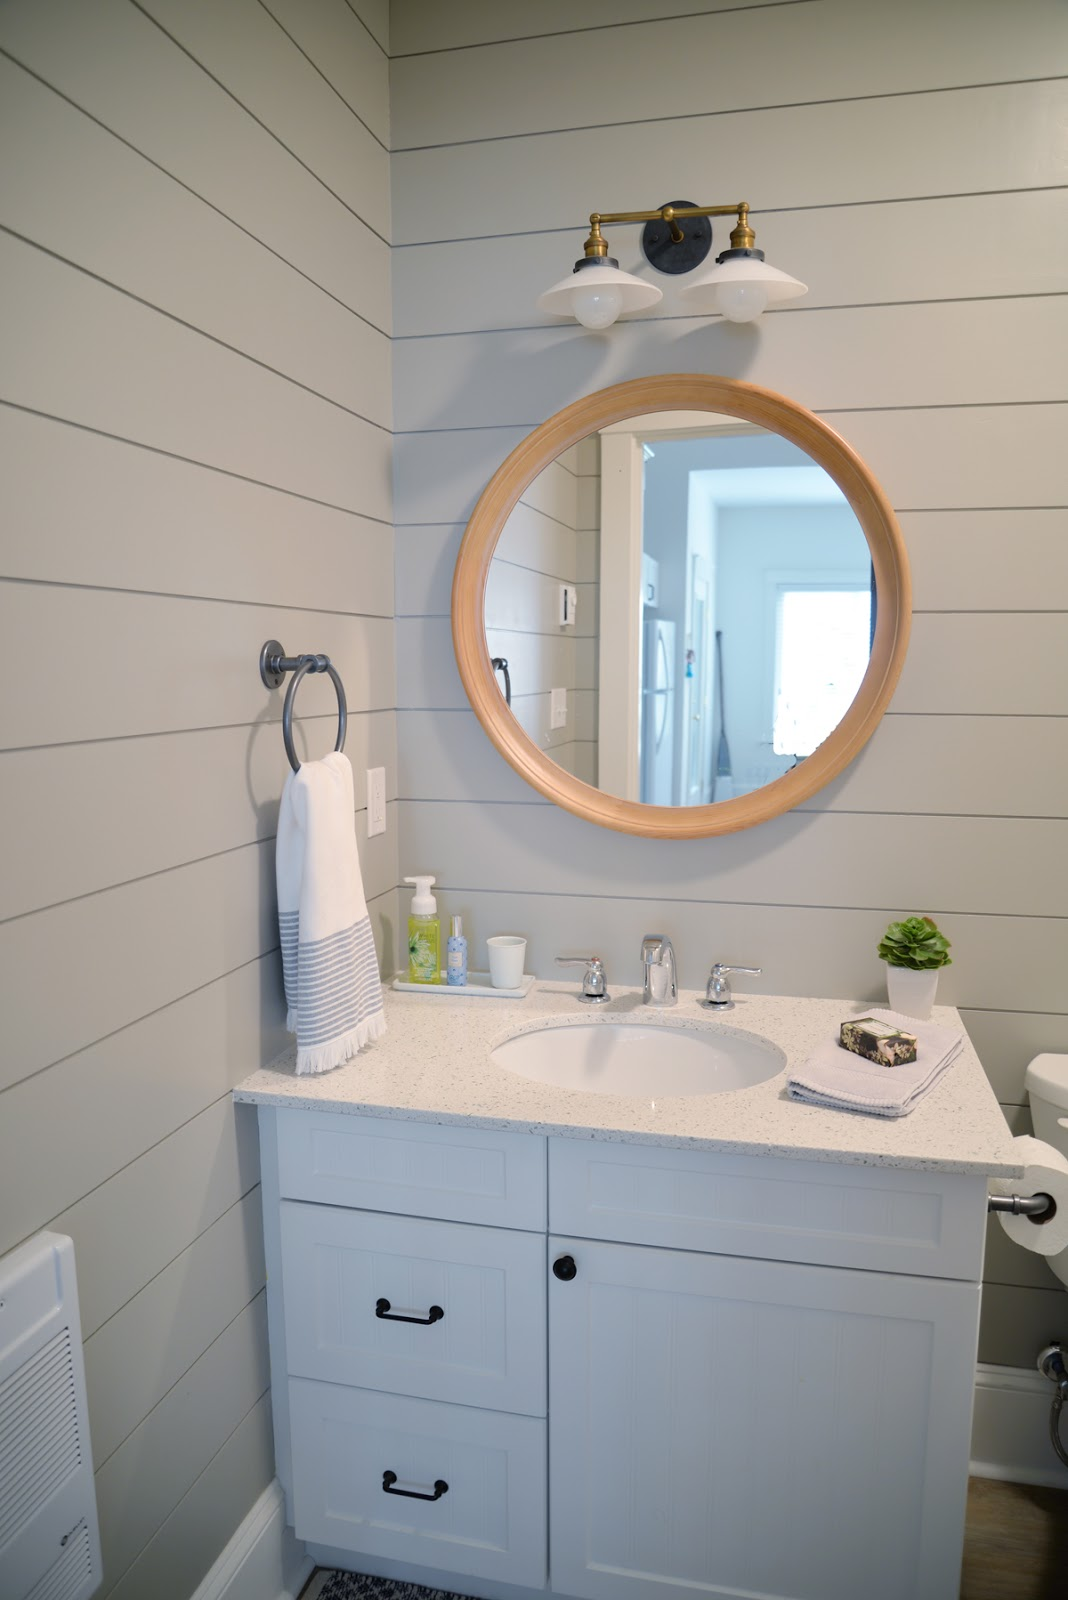 grey painted shiplap in the bathroom, round wood mirror, milk glass sconce | shiplap bathroom accent wall